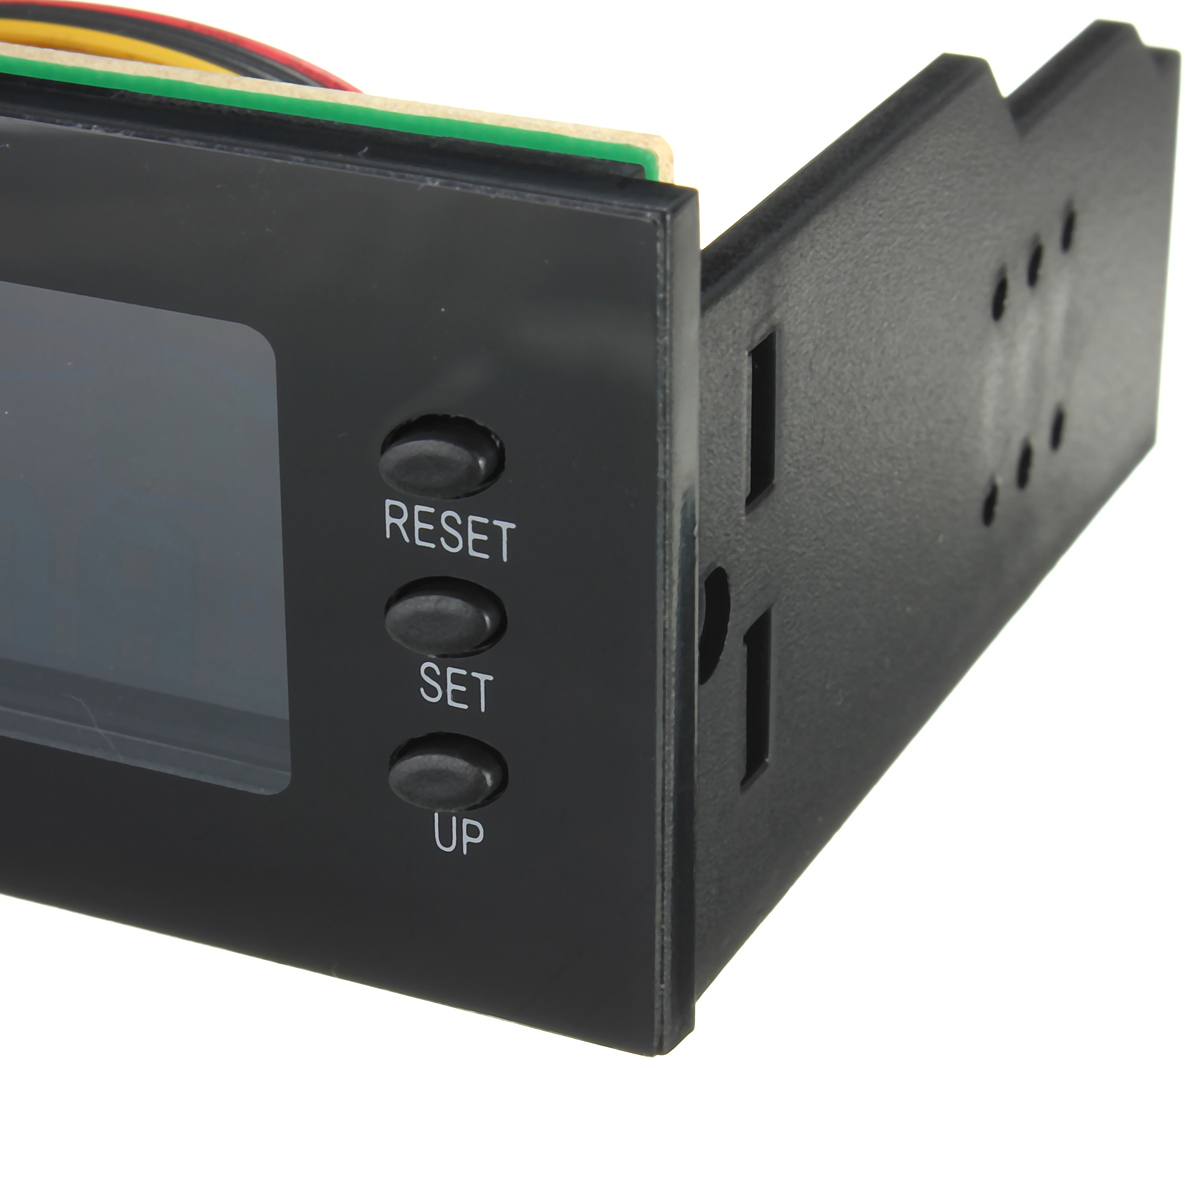 STW-5006 5.25 inch LCD Display CPU Cooling Fan Speed Controller Temperature for Desktop PC